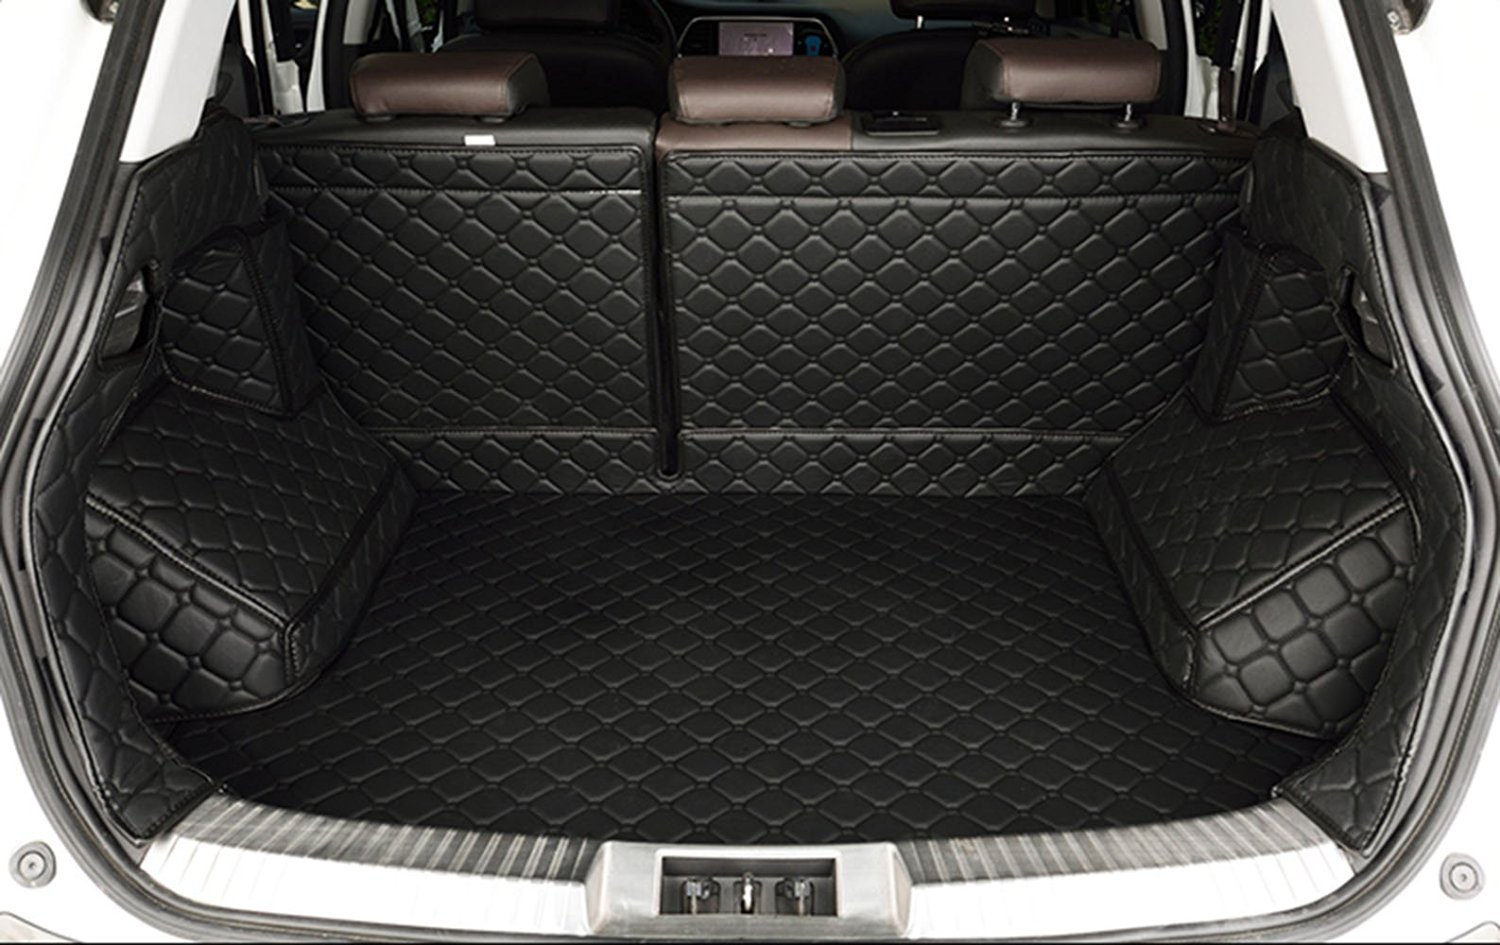 Auto mall Waterproof Custom Fit Full Covered Trunk Mats Cargo Liners Leather Boots Liner Pet Mats for Mercedes R Class R300 R320 R350 R400 2009-2015 7 seats Black